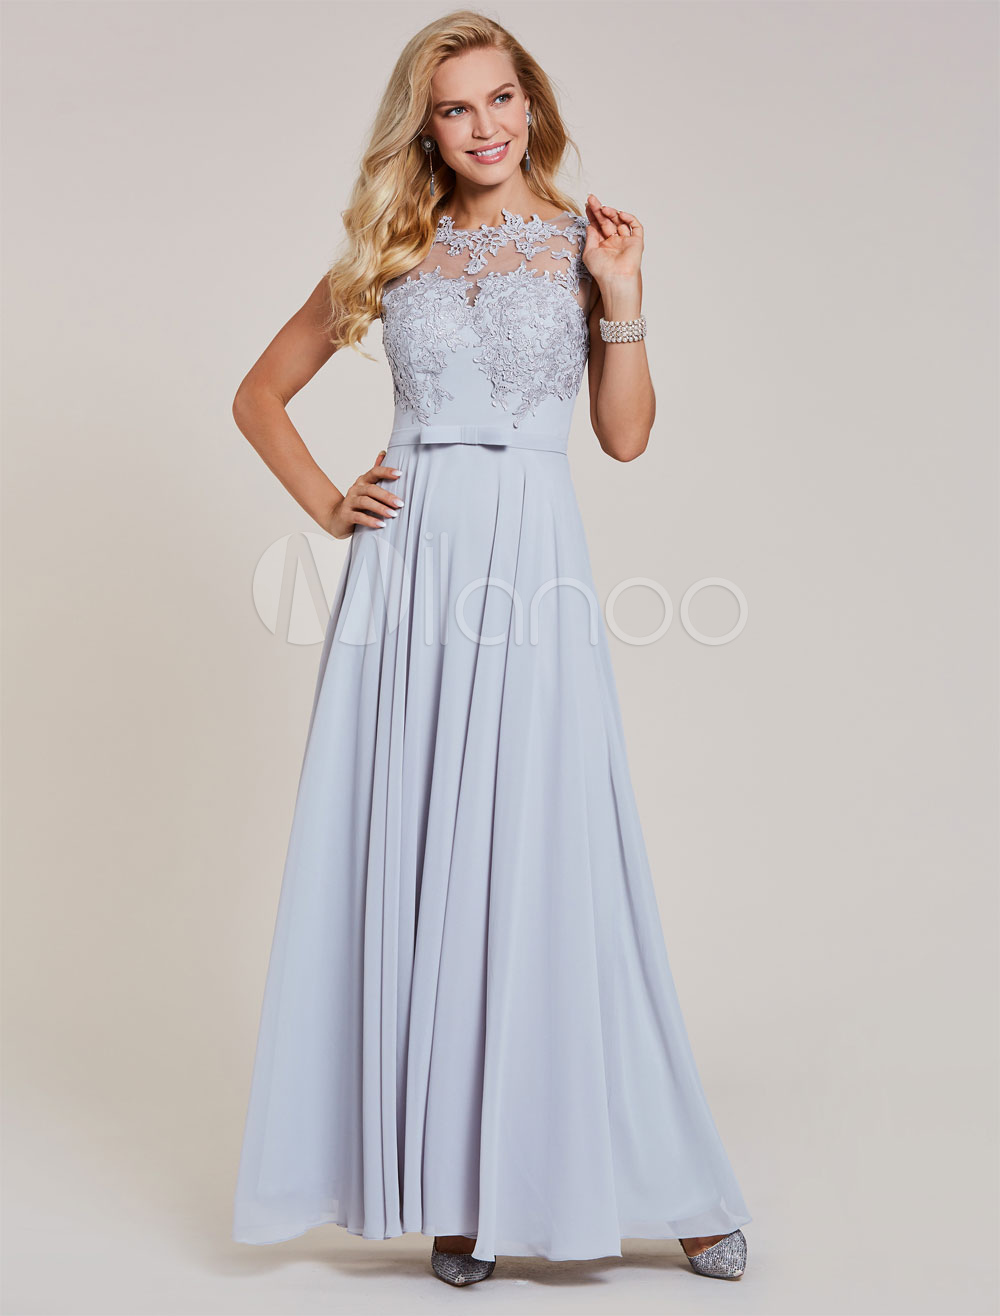 Buy Silver Prom Dresses Long Chiffon Evening Gowns Lace Applique Illusion Floor Length Bow Sash Formal Occasion Dress for $83.59 in Milanoo store